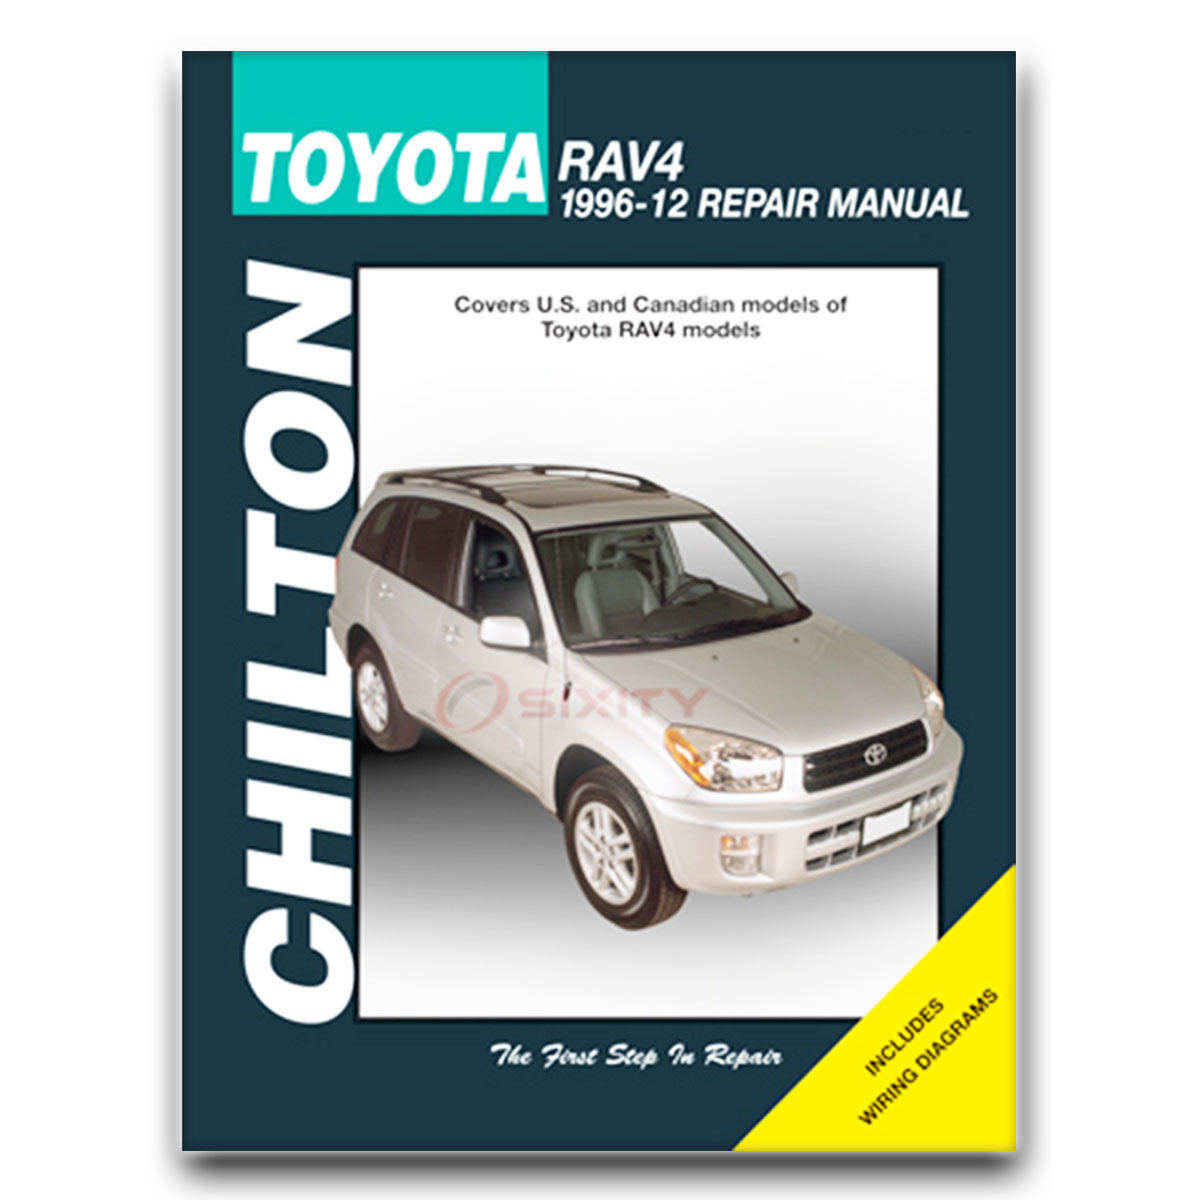 Chilton Repair Manual 68670 for Toyota RAV4 1996-10 Shop Service Garage  Book rx